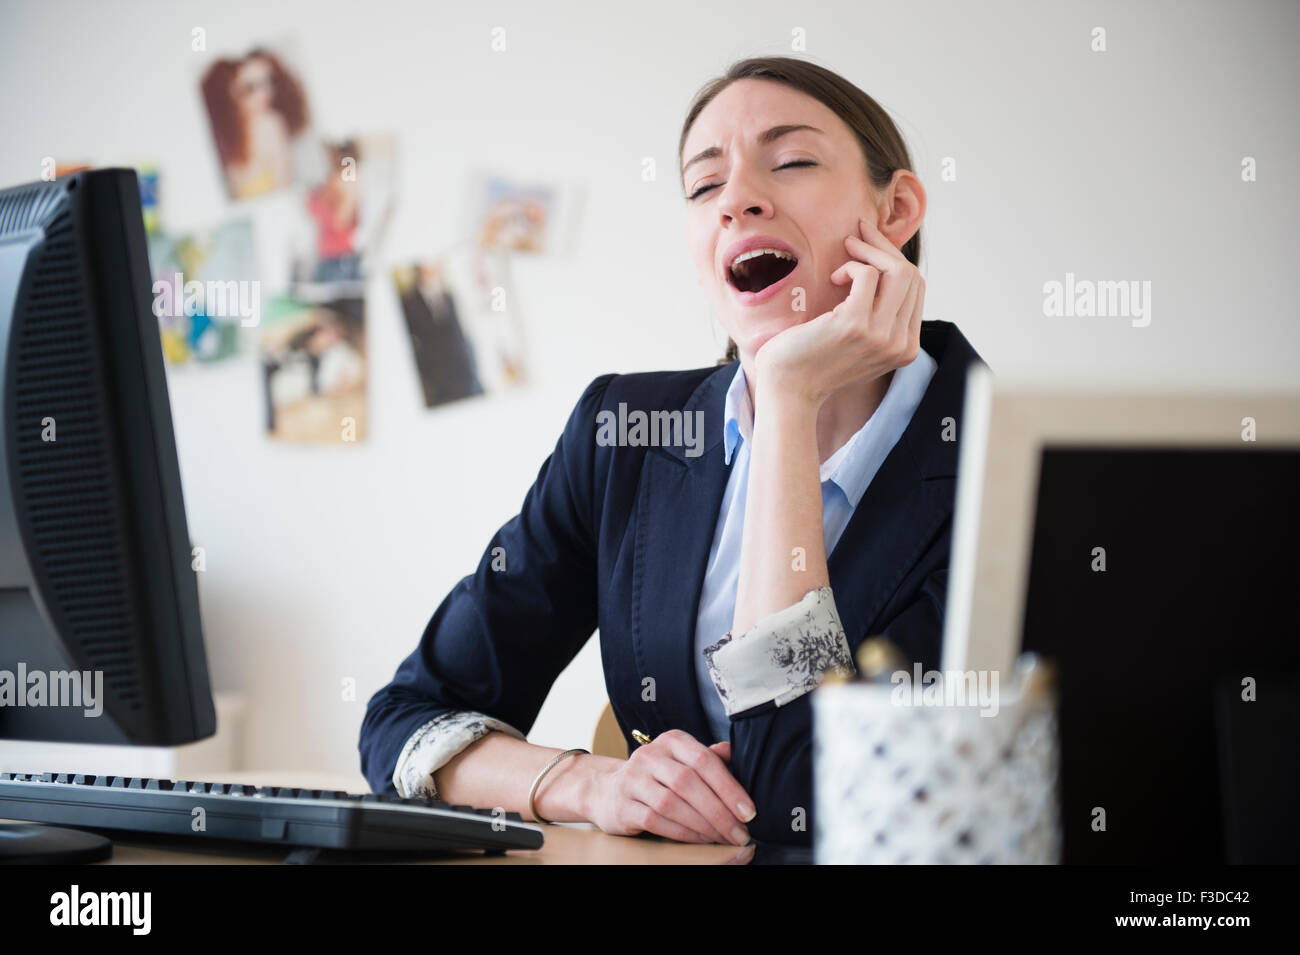 Woman yawning in office - Stock Image